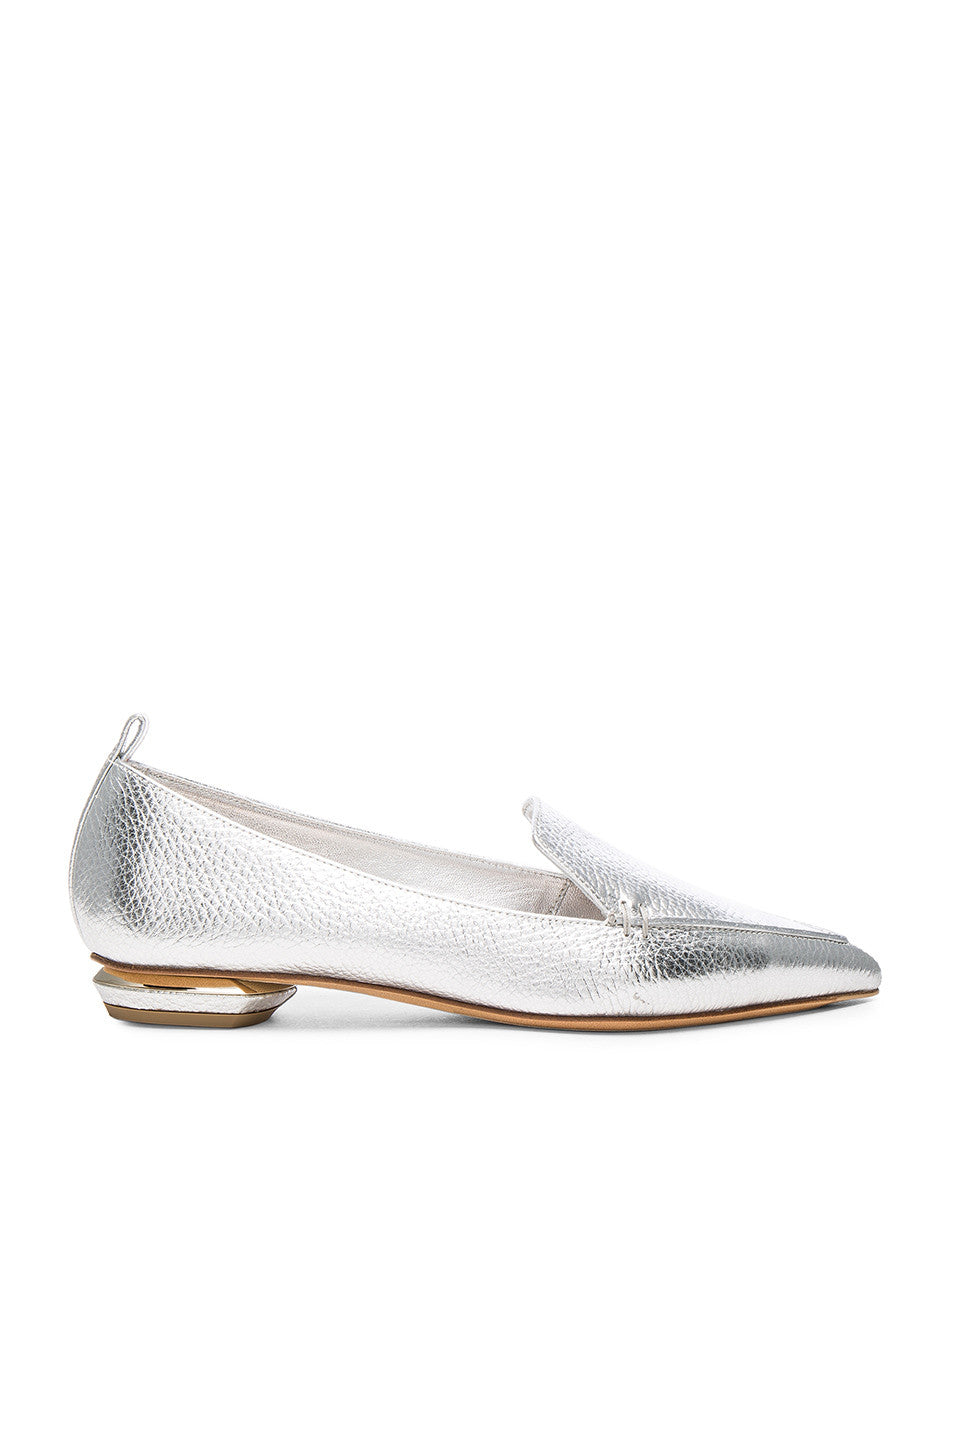 Nicholas Kirkwood Leather Beya Loafers